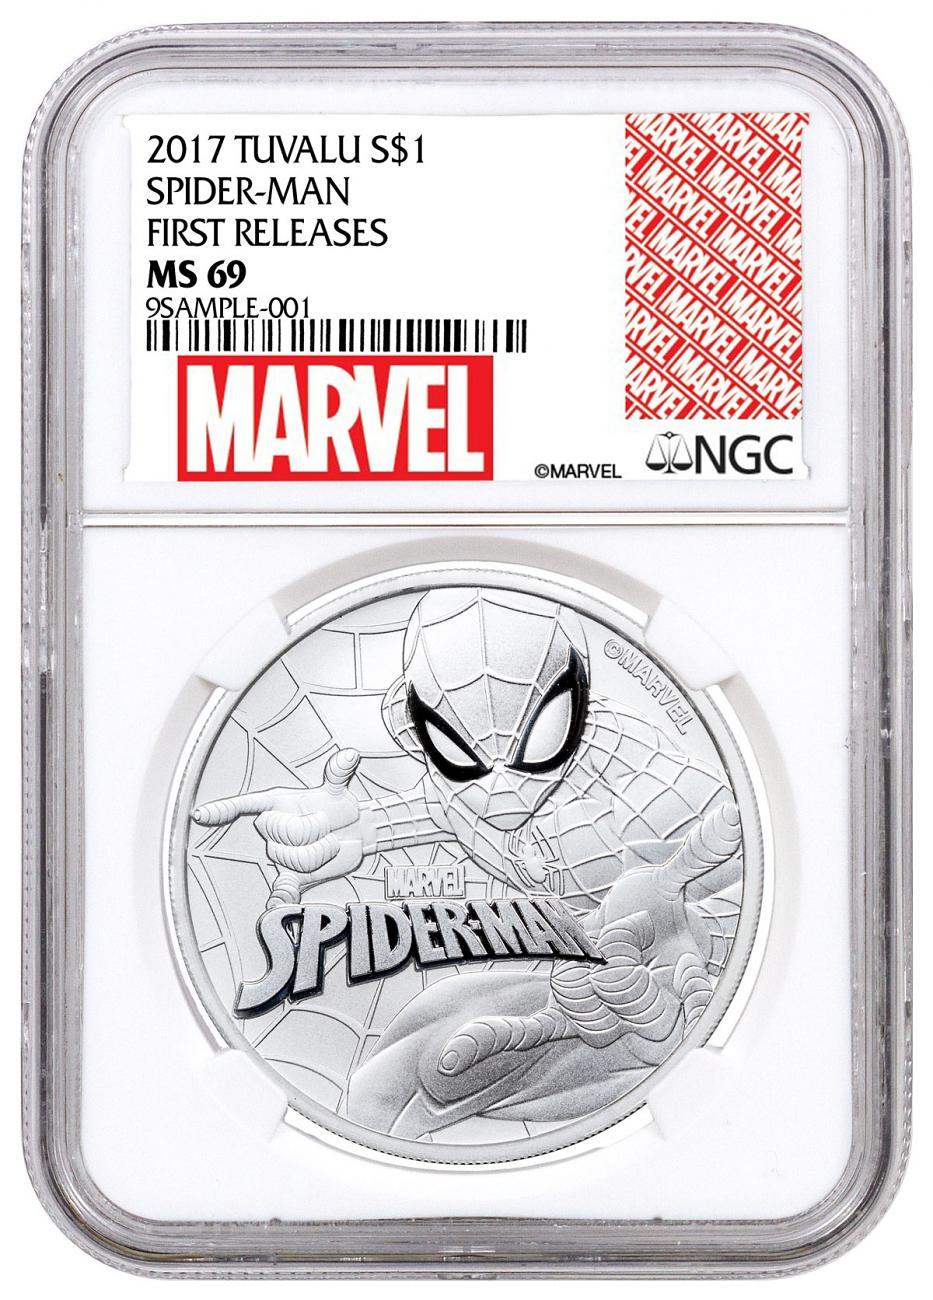 2017 Tuvalu Spider-Man 1 oz Silver Marvel Series $1 Coin NGC MS69 FR Exclusive Marvel Label